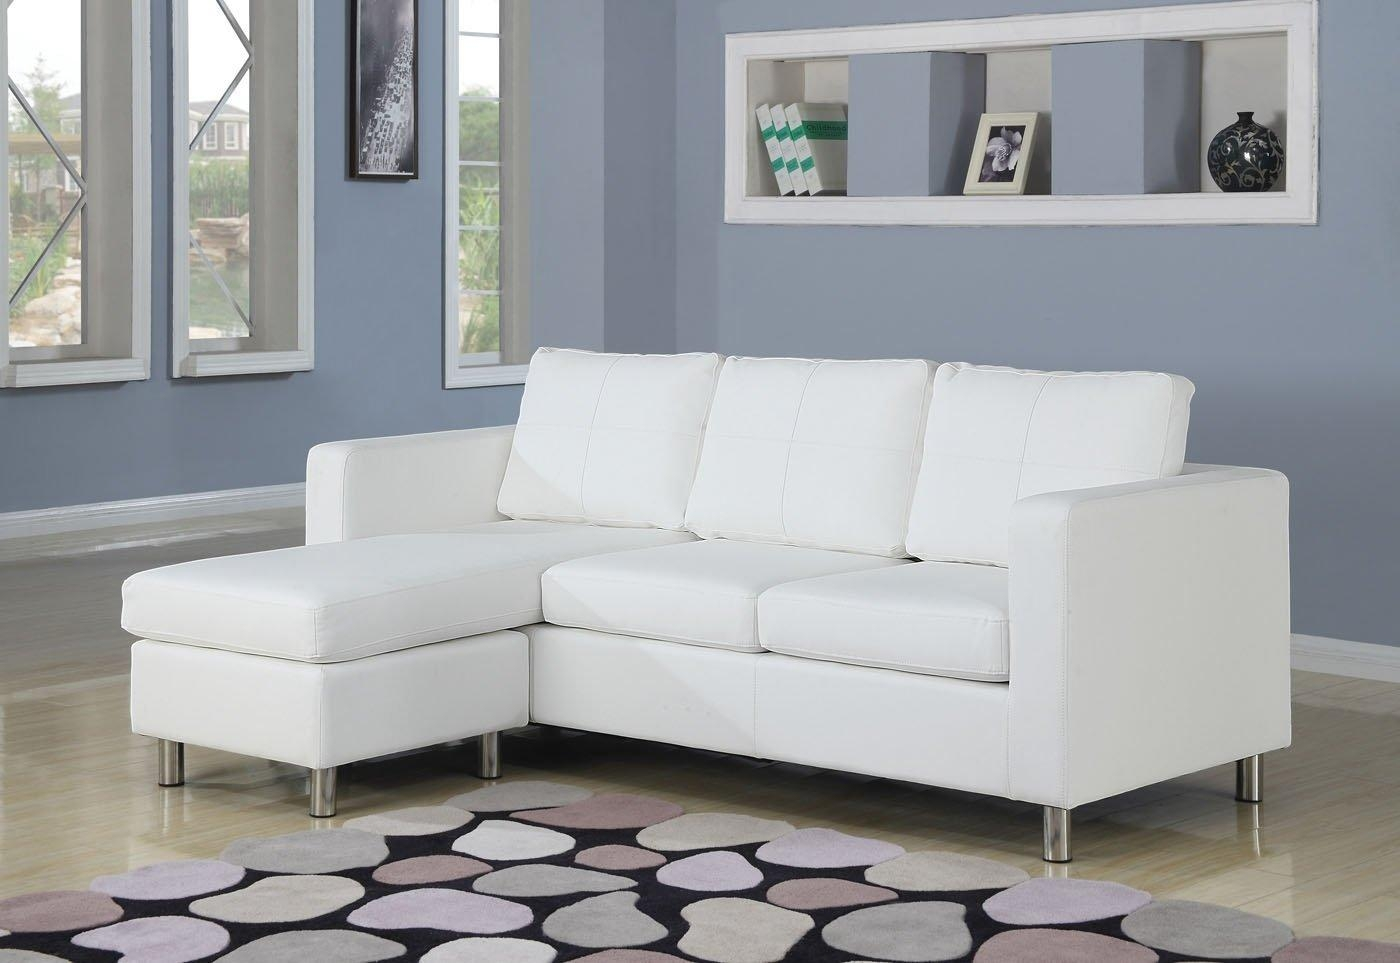 Small Scale Leather Sofa | Tehranmix Decoration Within Small Scale Sofas (View 11 of 20)